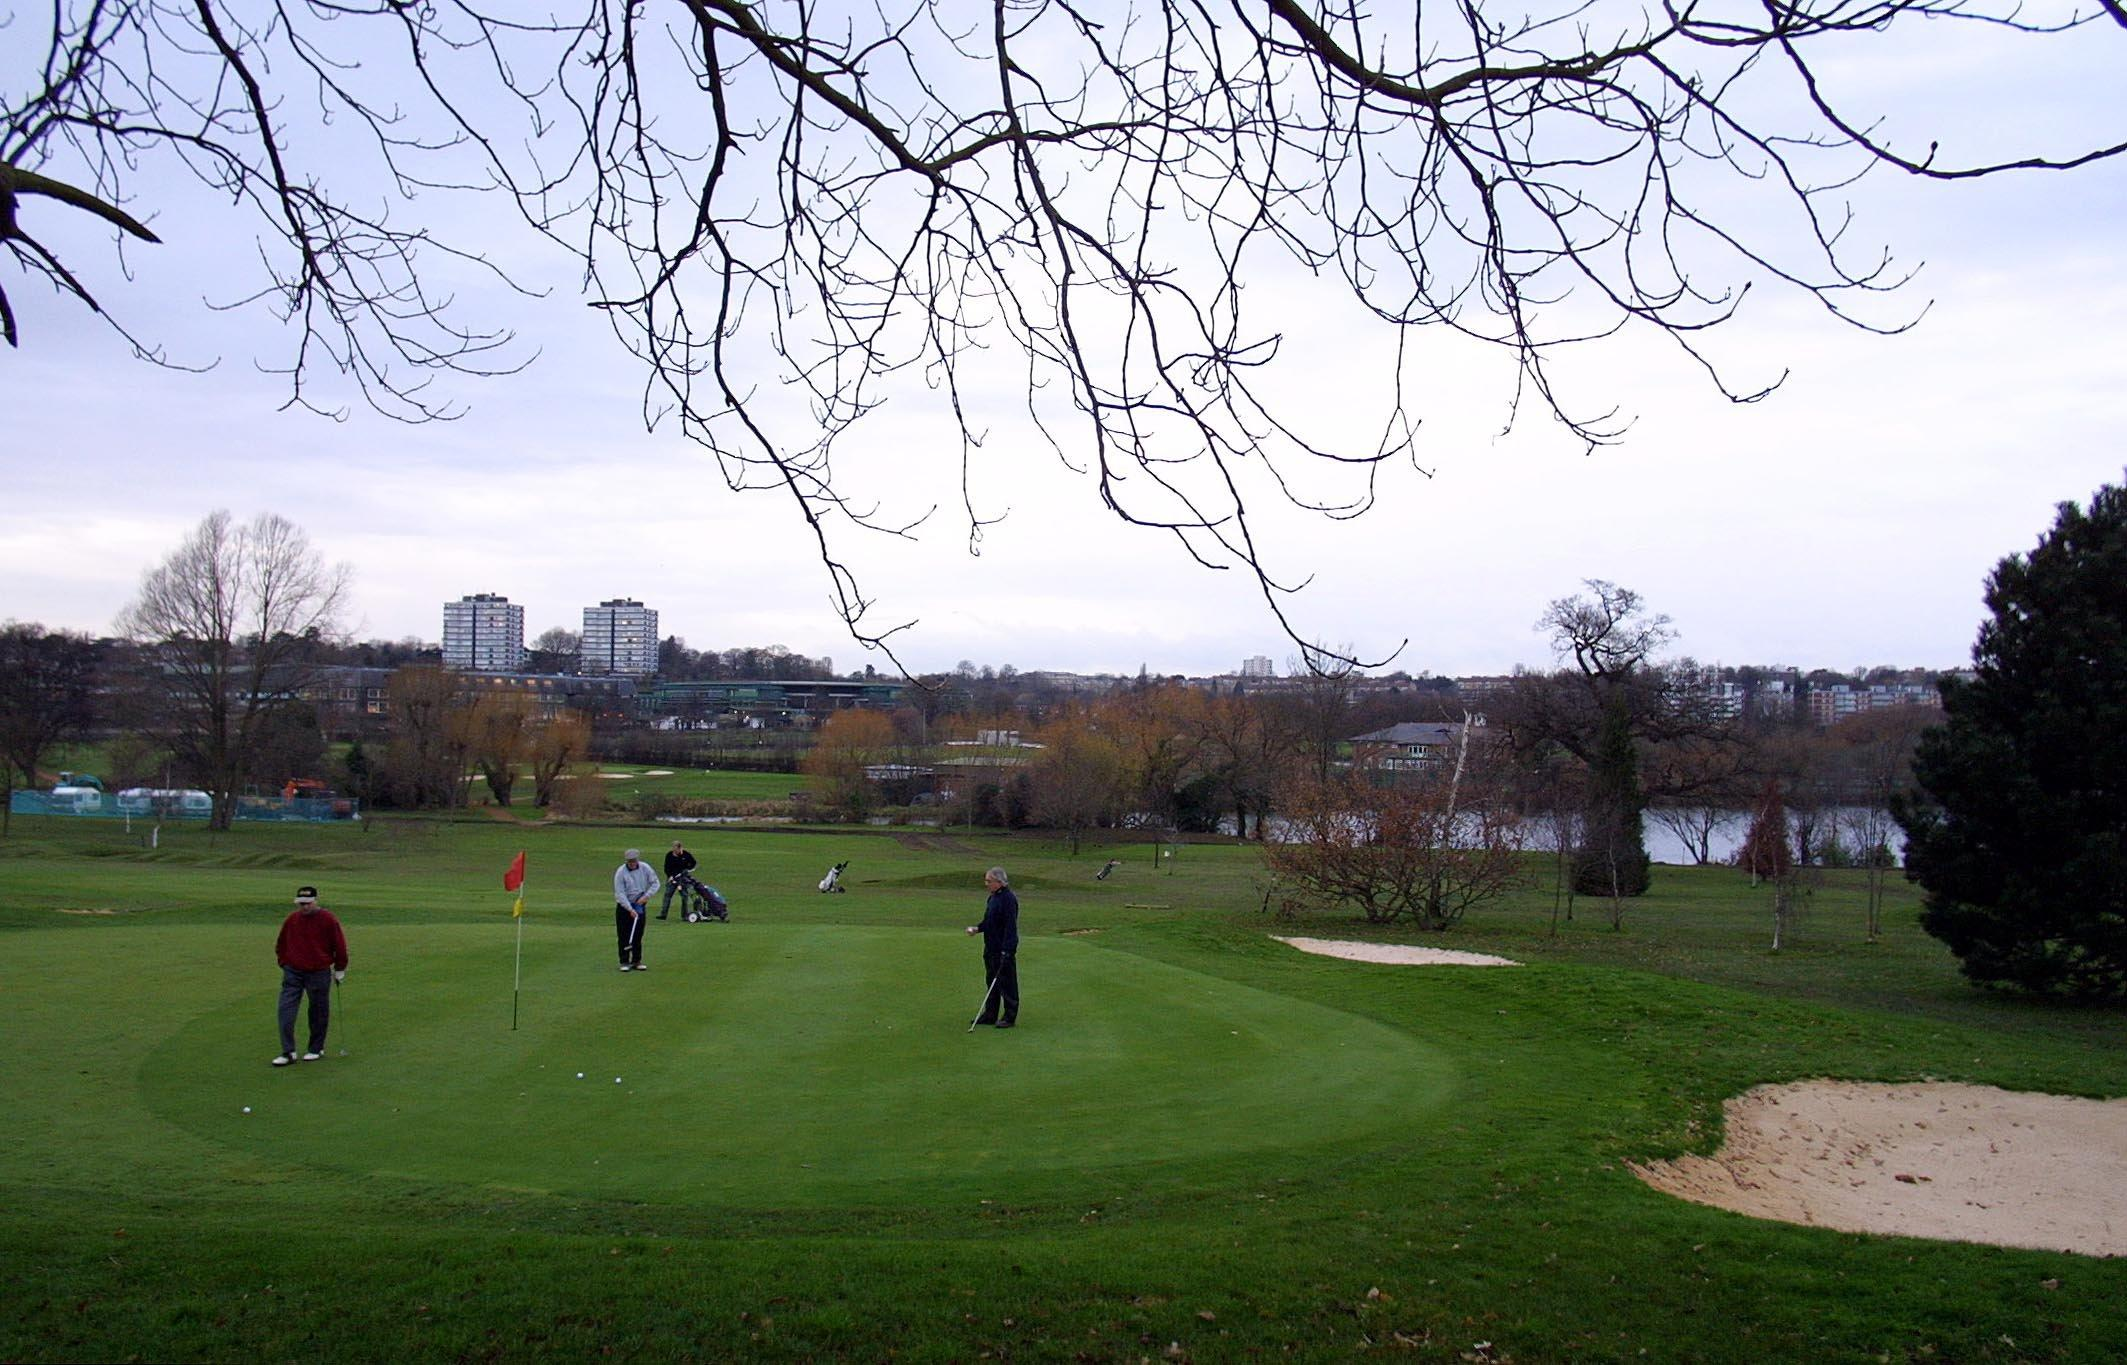 Ownership of the Wimbledon Park Golf Club will transfer to the All-England Lawn Tennis Club from December 21